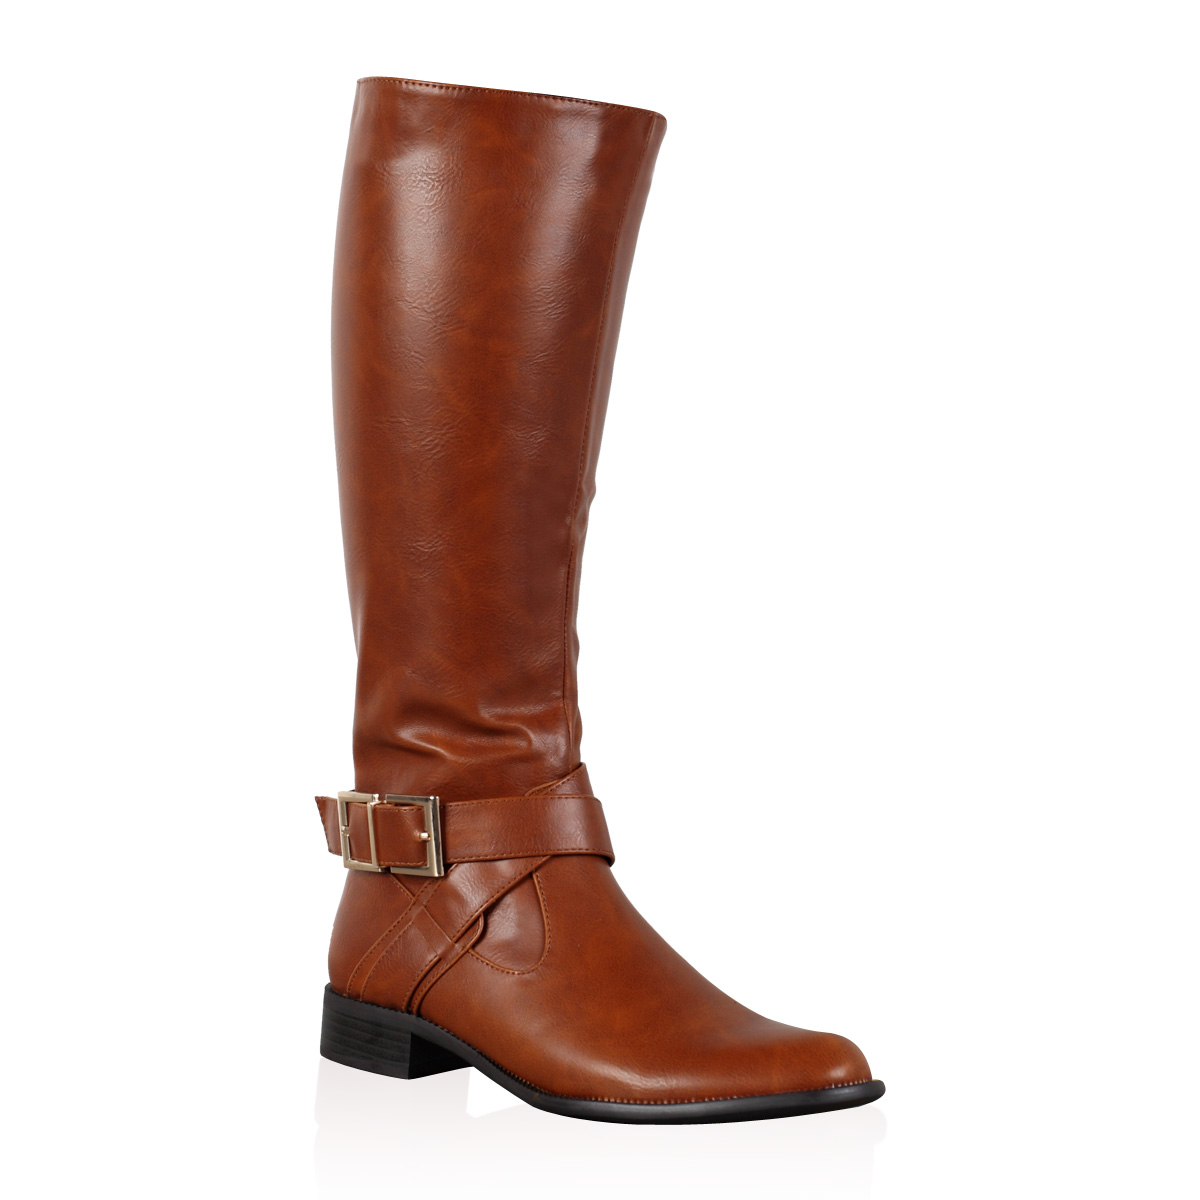 Brilliant Brown Boots For Women Ebay Justin Womens 9 Brown Leather Cowboy